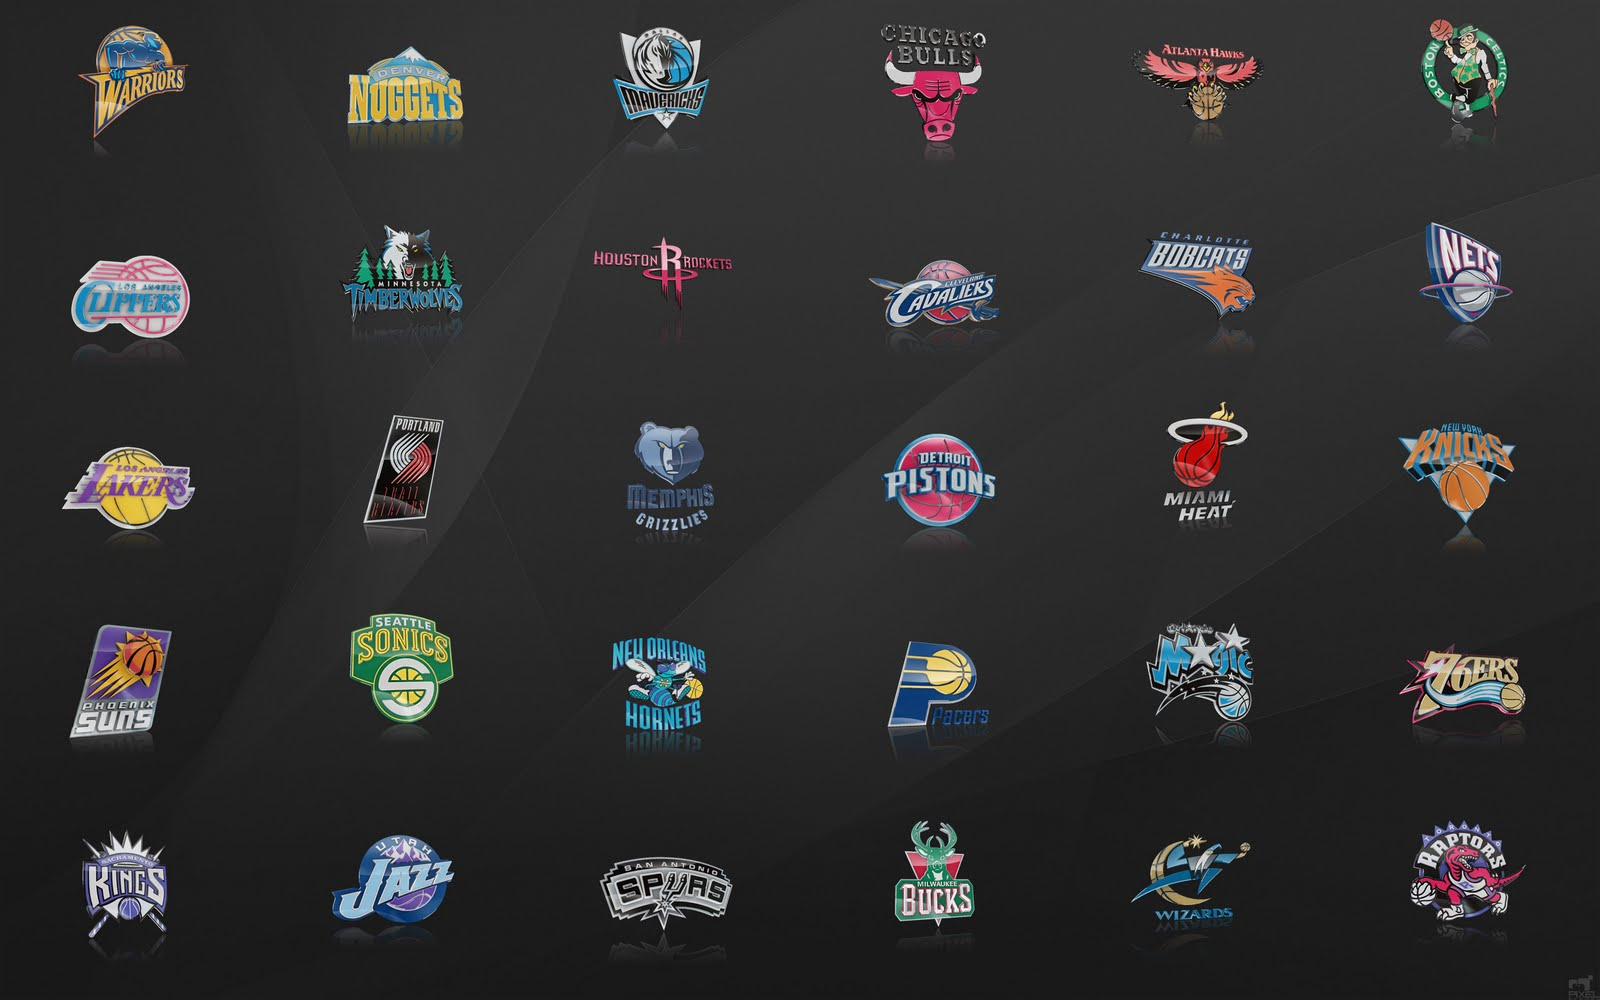 NBA wallpaper Teams logo NBA Wallpaper 1600x1000